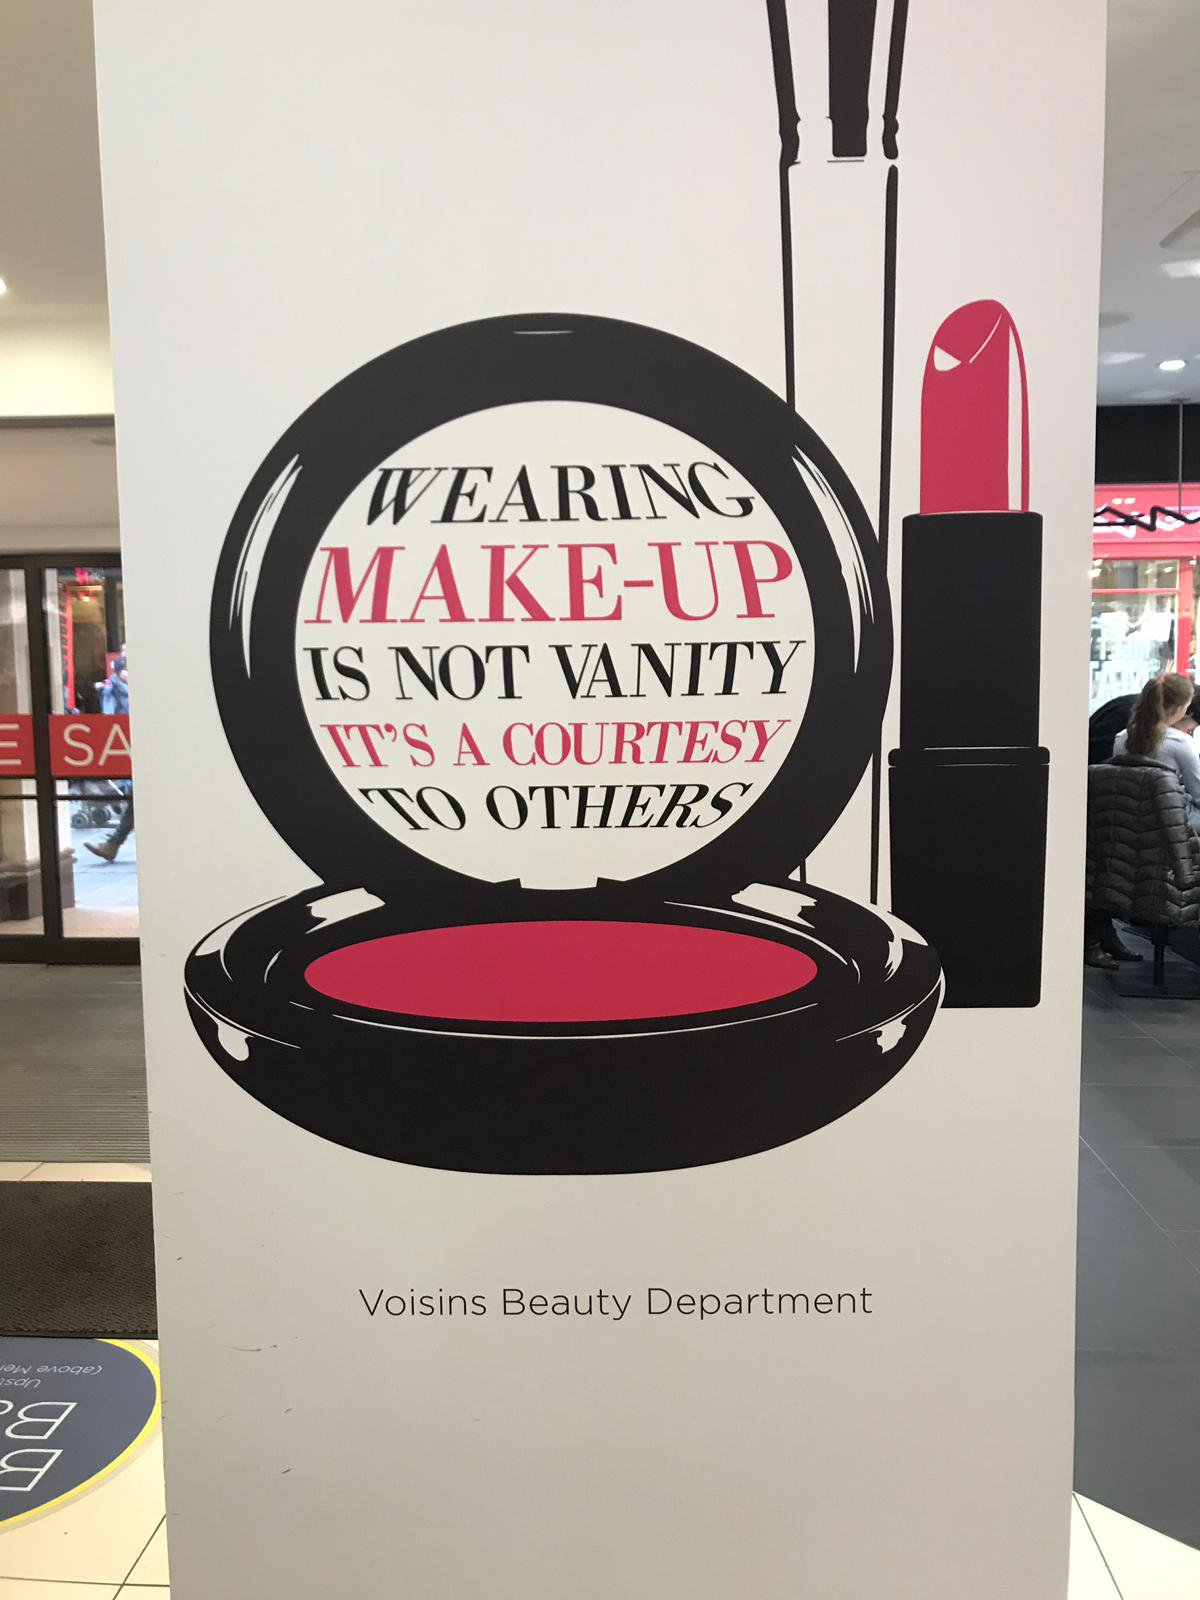 'Wearing make-up is not vanity, it's a courtesy to others'. Offensive advert at Voisins Department Store, St Helier, Jersey. (Picture: Josephine Liptrott/Twitter)